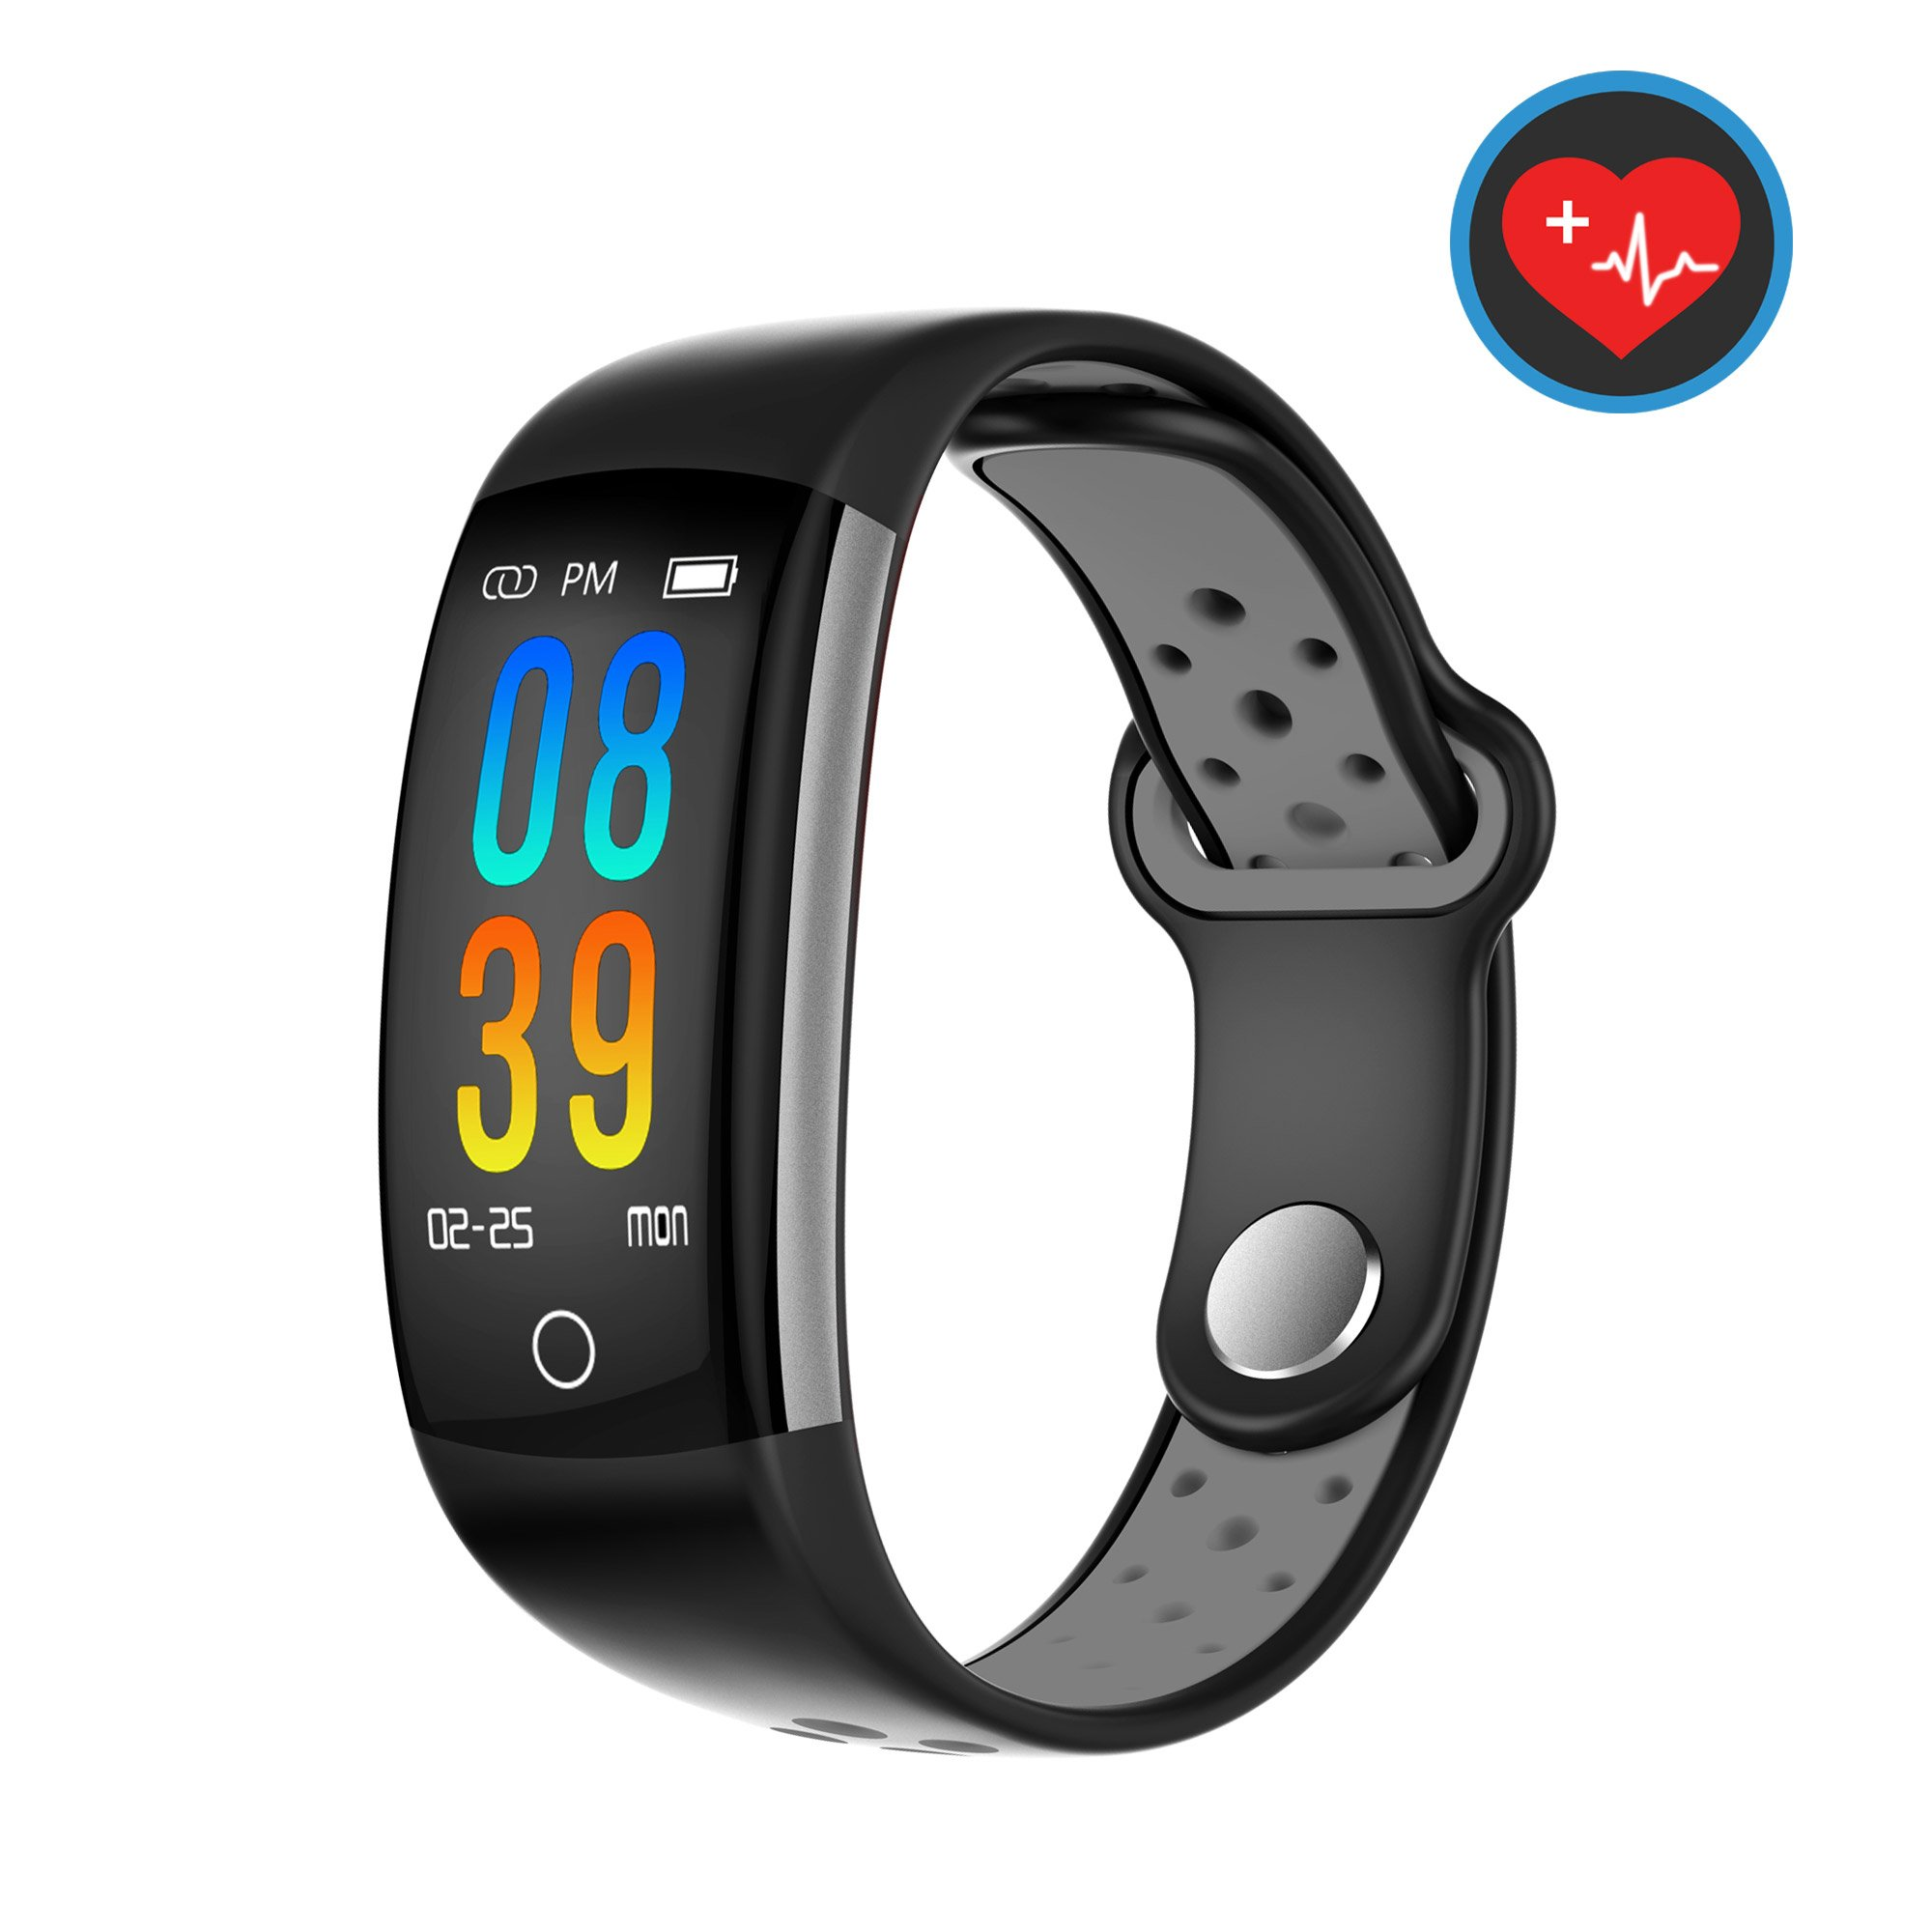 Fitness Tracker Smart Watch,IP68 Waterproof Activity Tracker with Heart Rate Blood Pressure Calorie Counter Pedometer for for Men, Women,and Kids